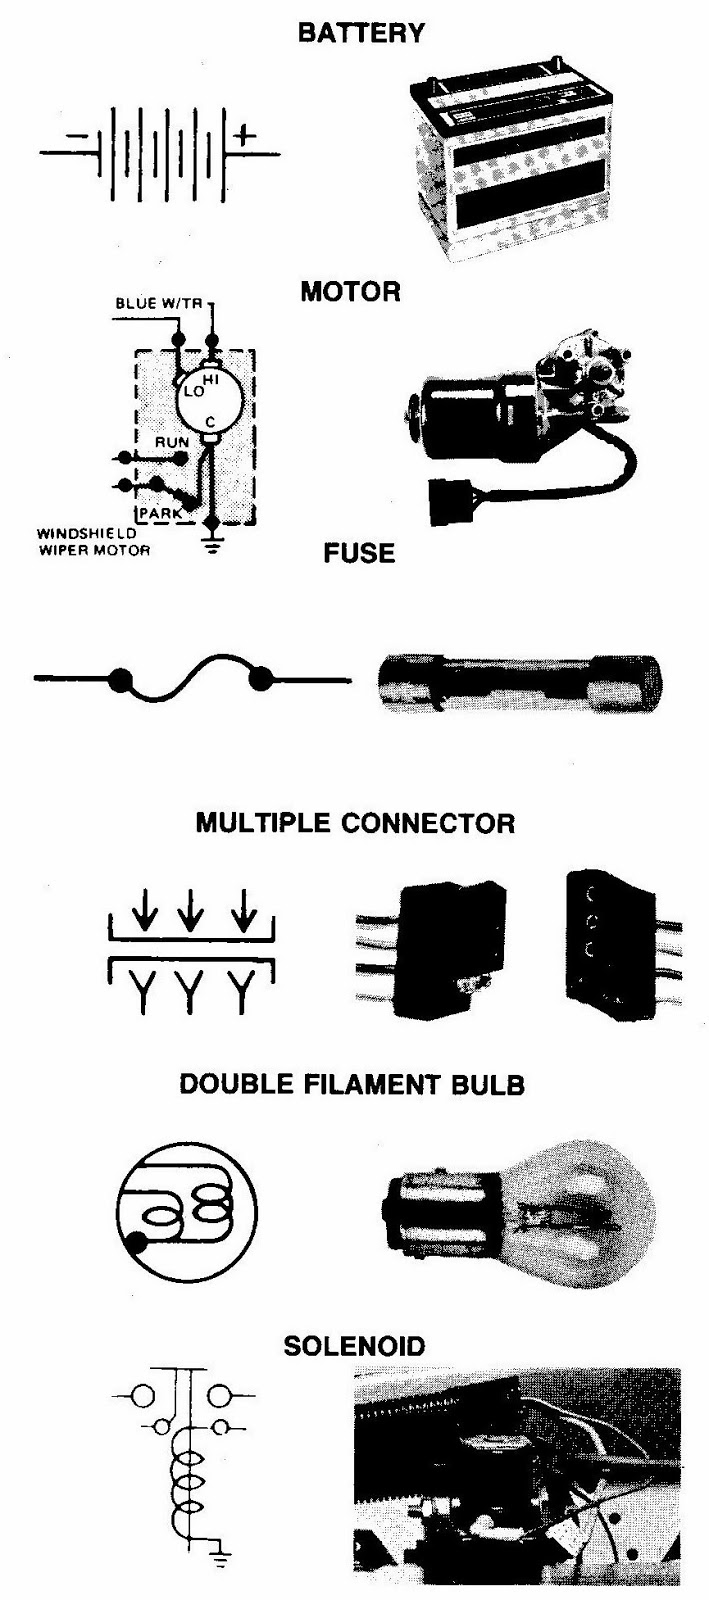 medium resolution of automotive diagram symbols and the actual hardware that they represent